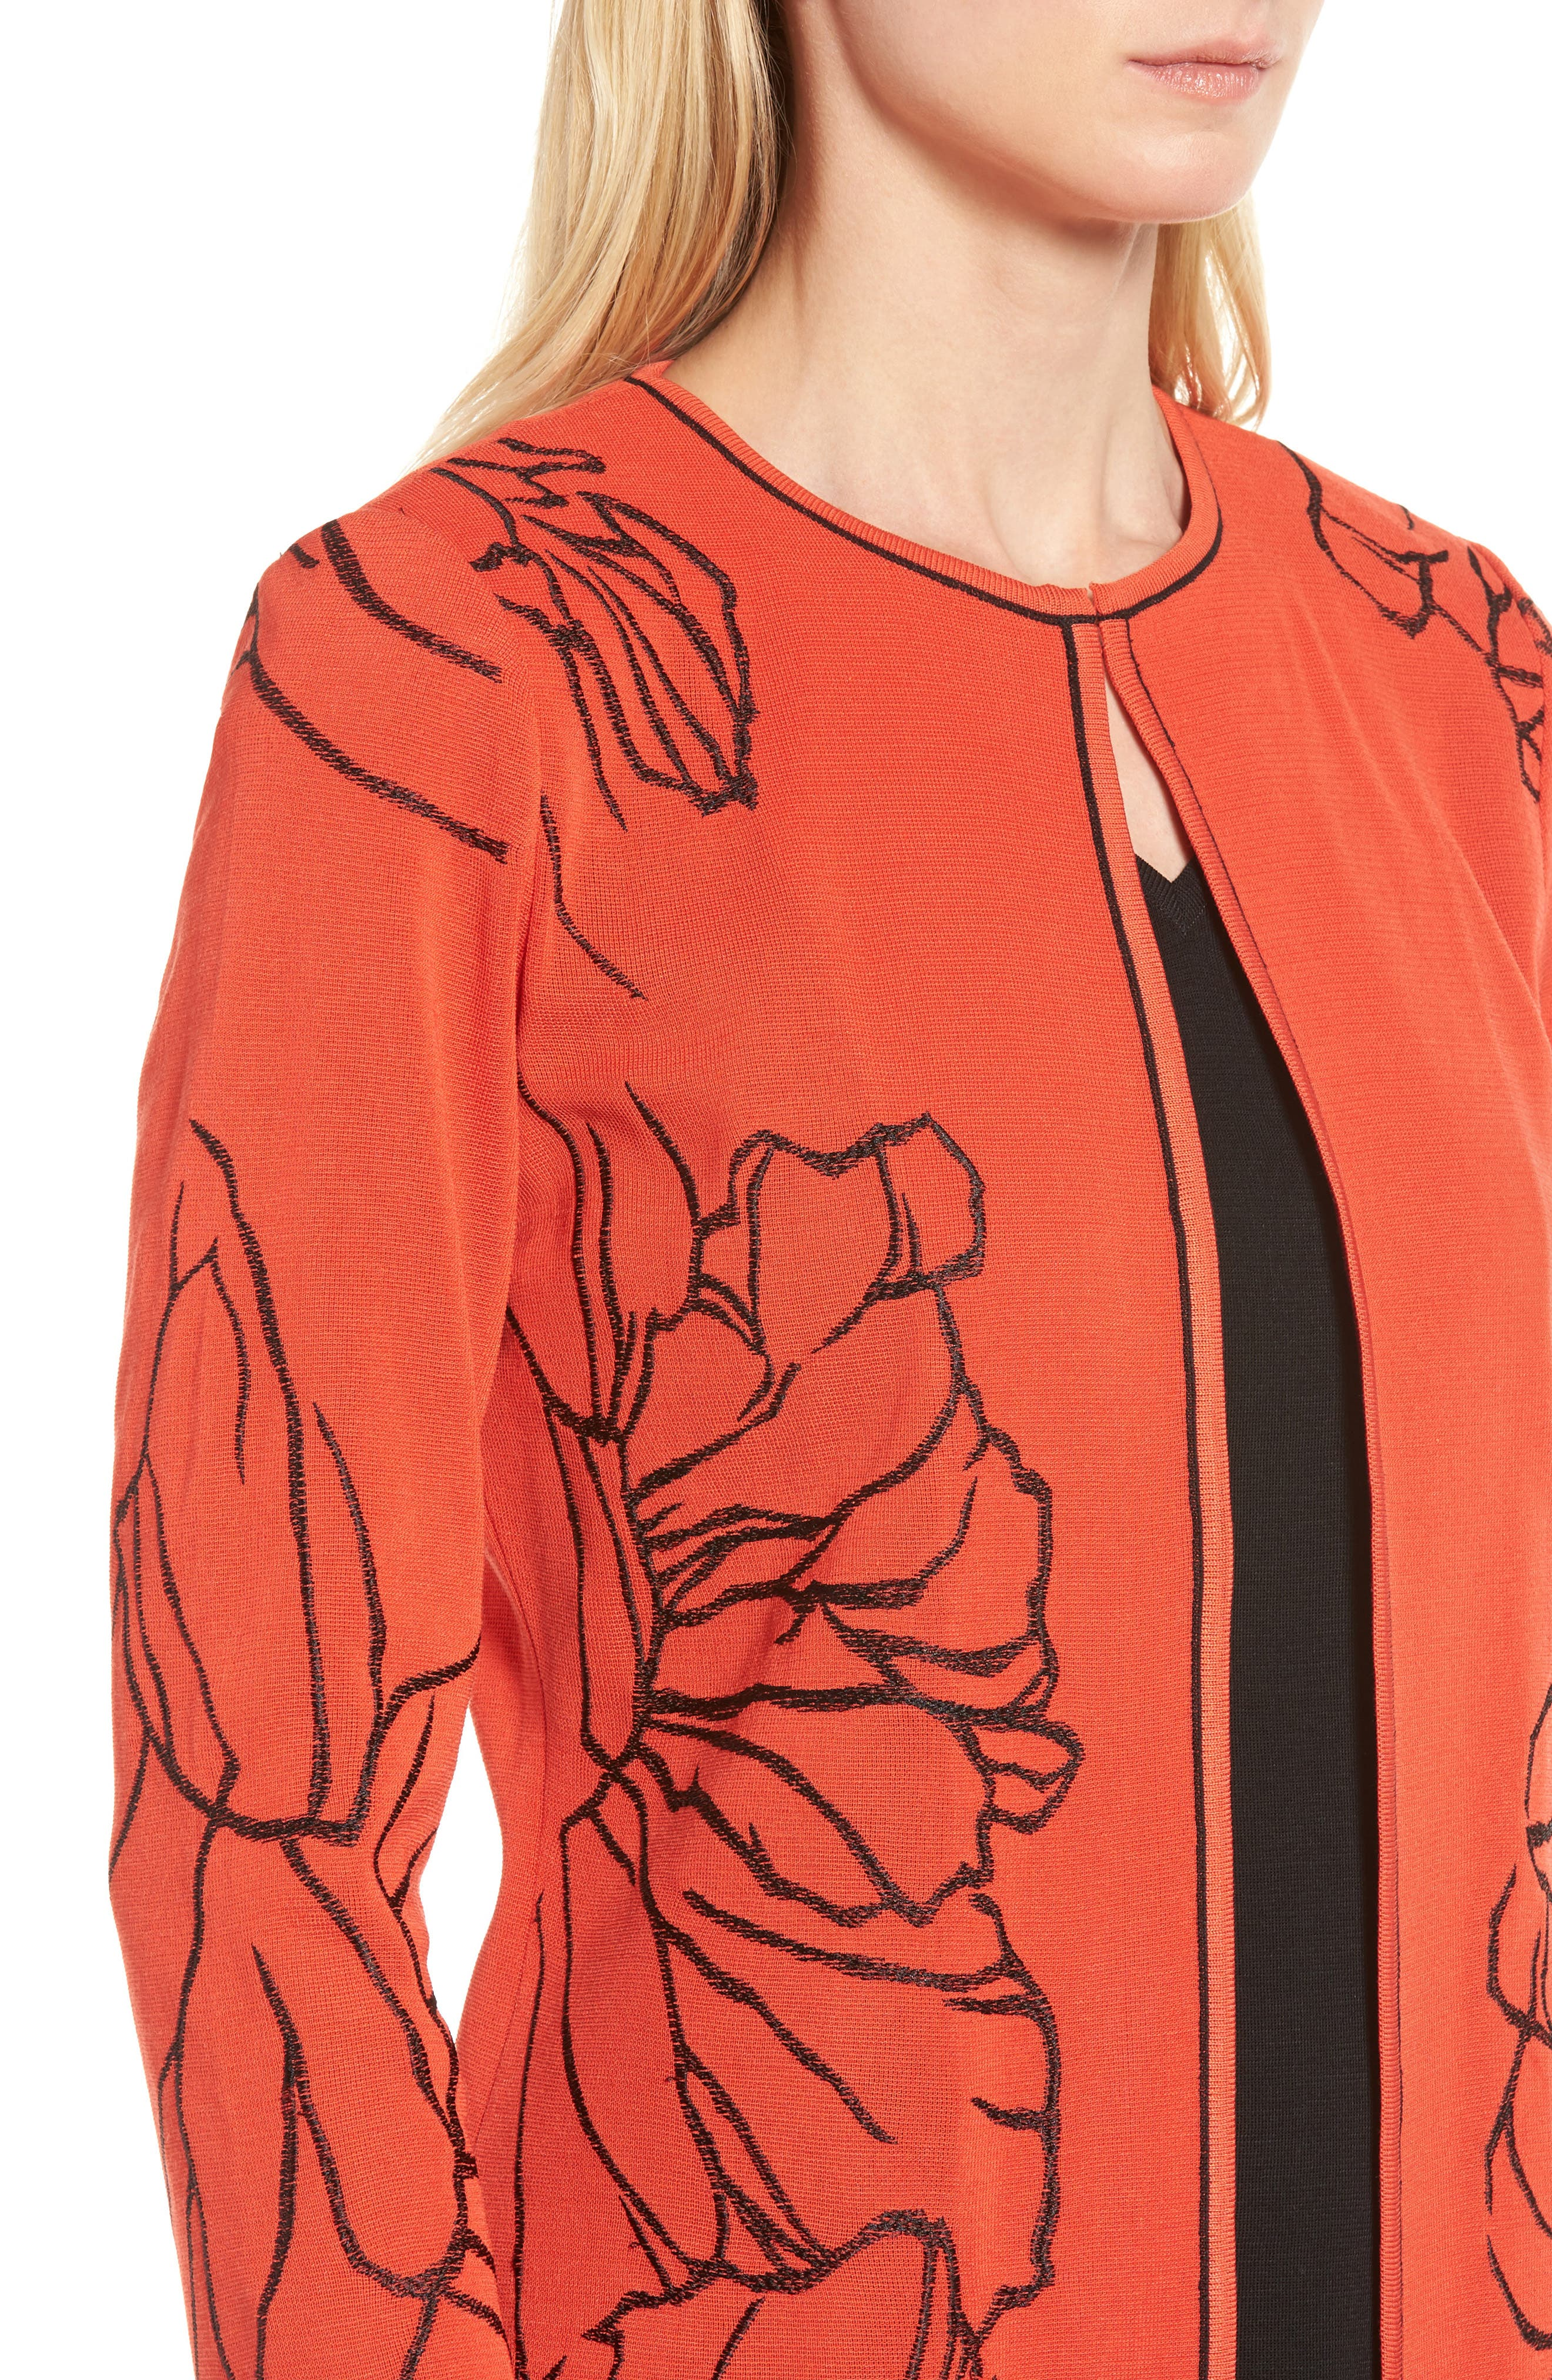 Embroidered Knit Jacket,                             Alternate thumbnail 4, color,                             608